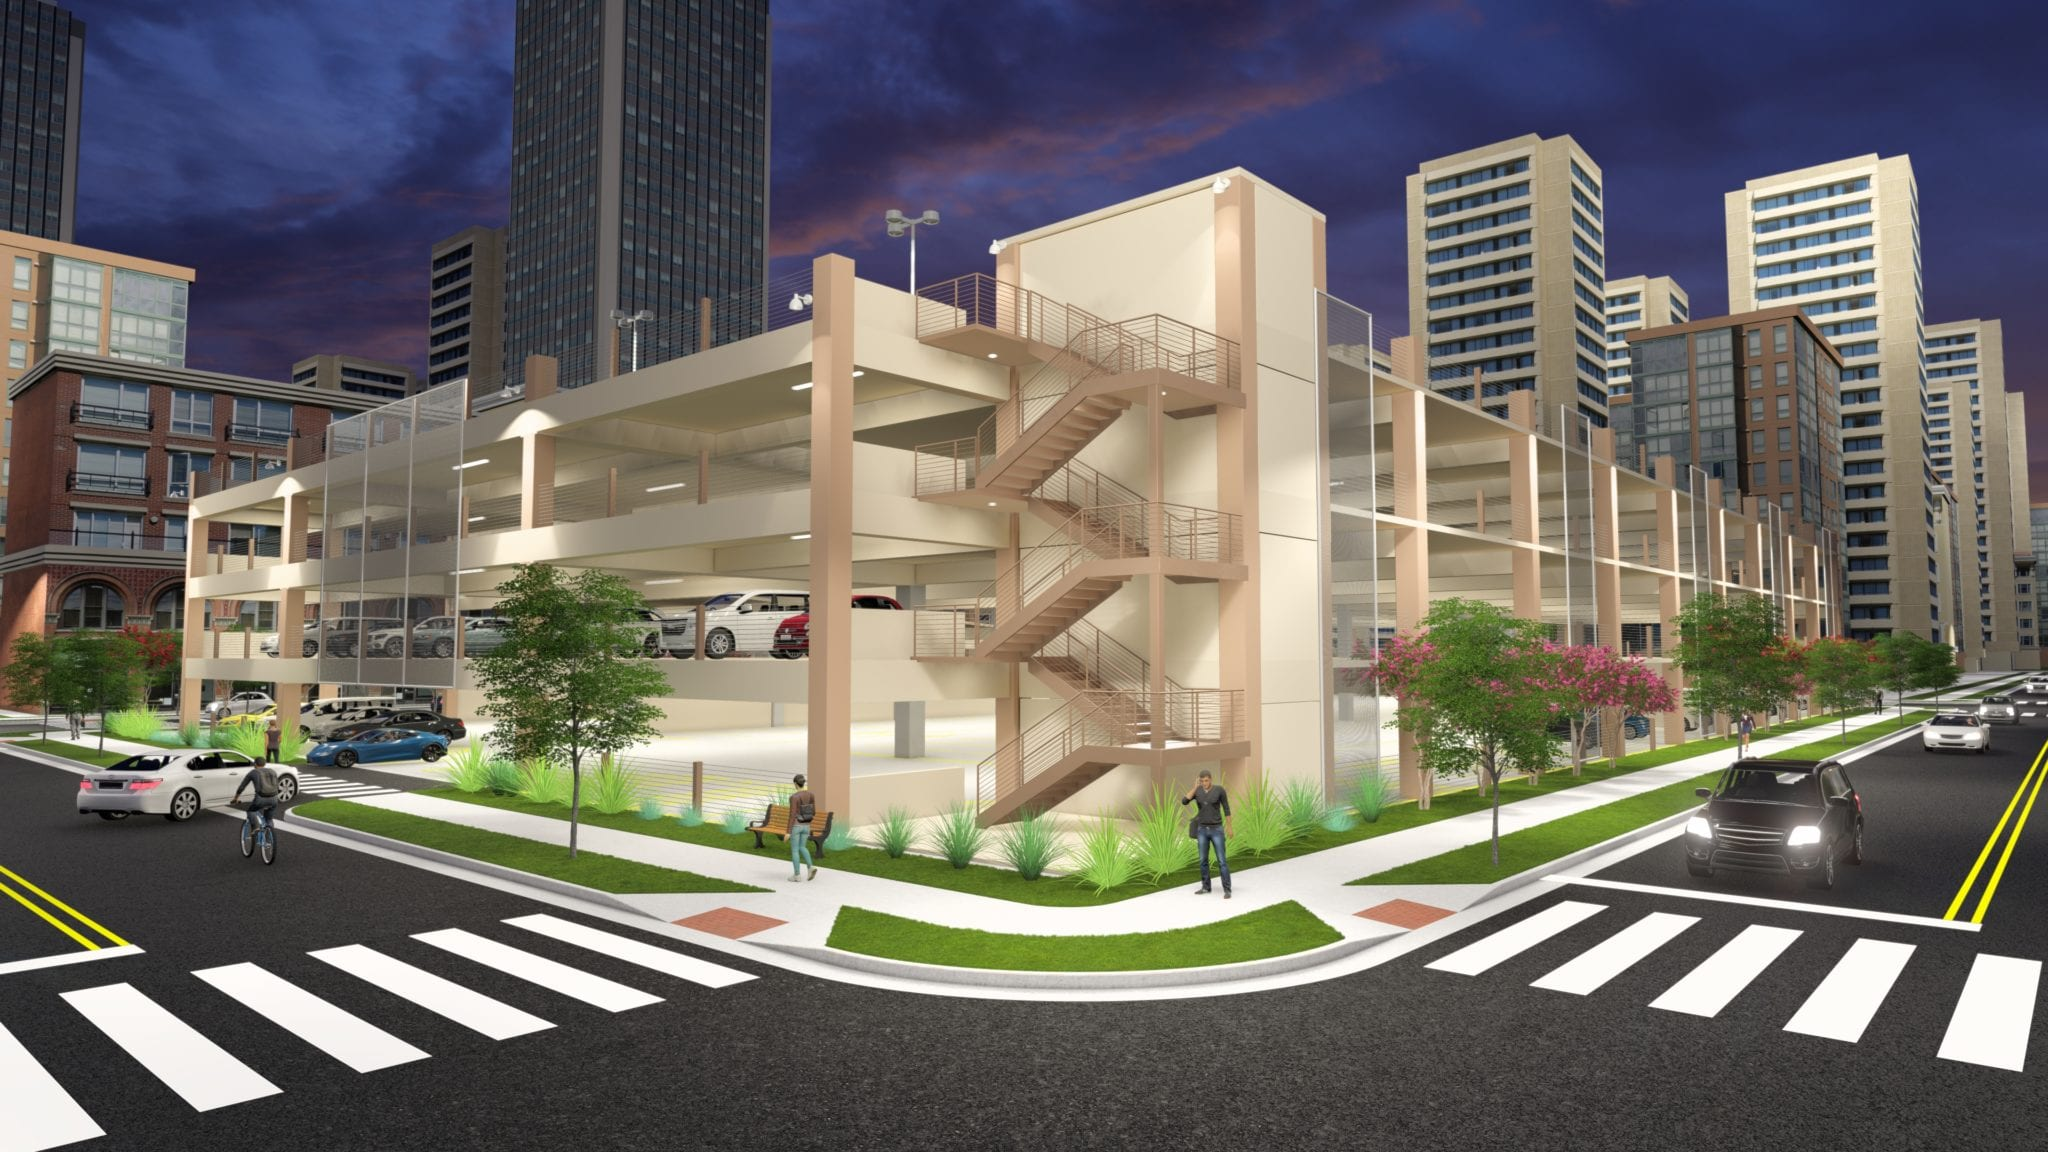 Parking Garage Rendering 1